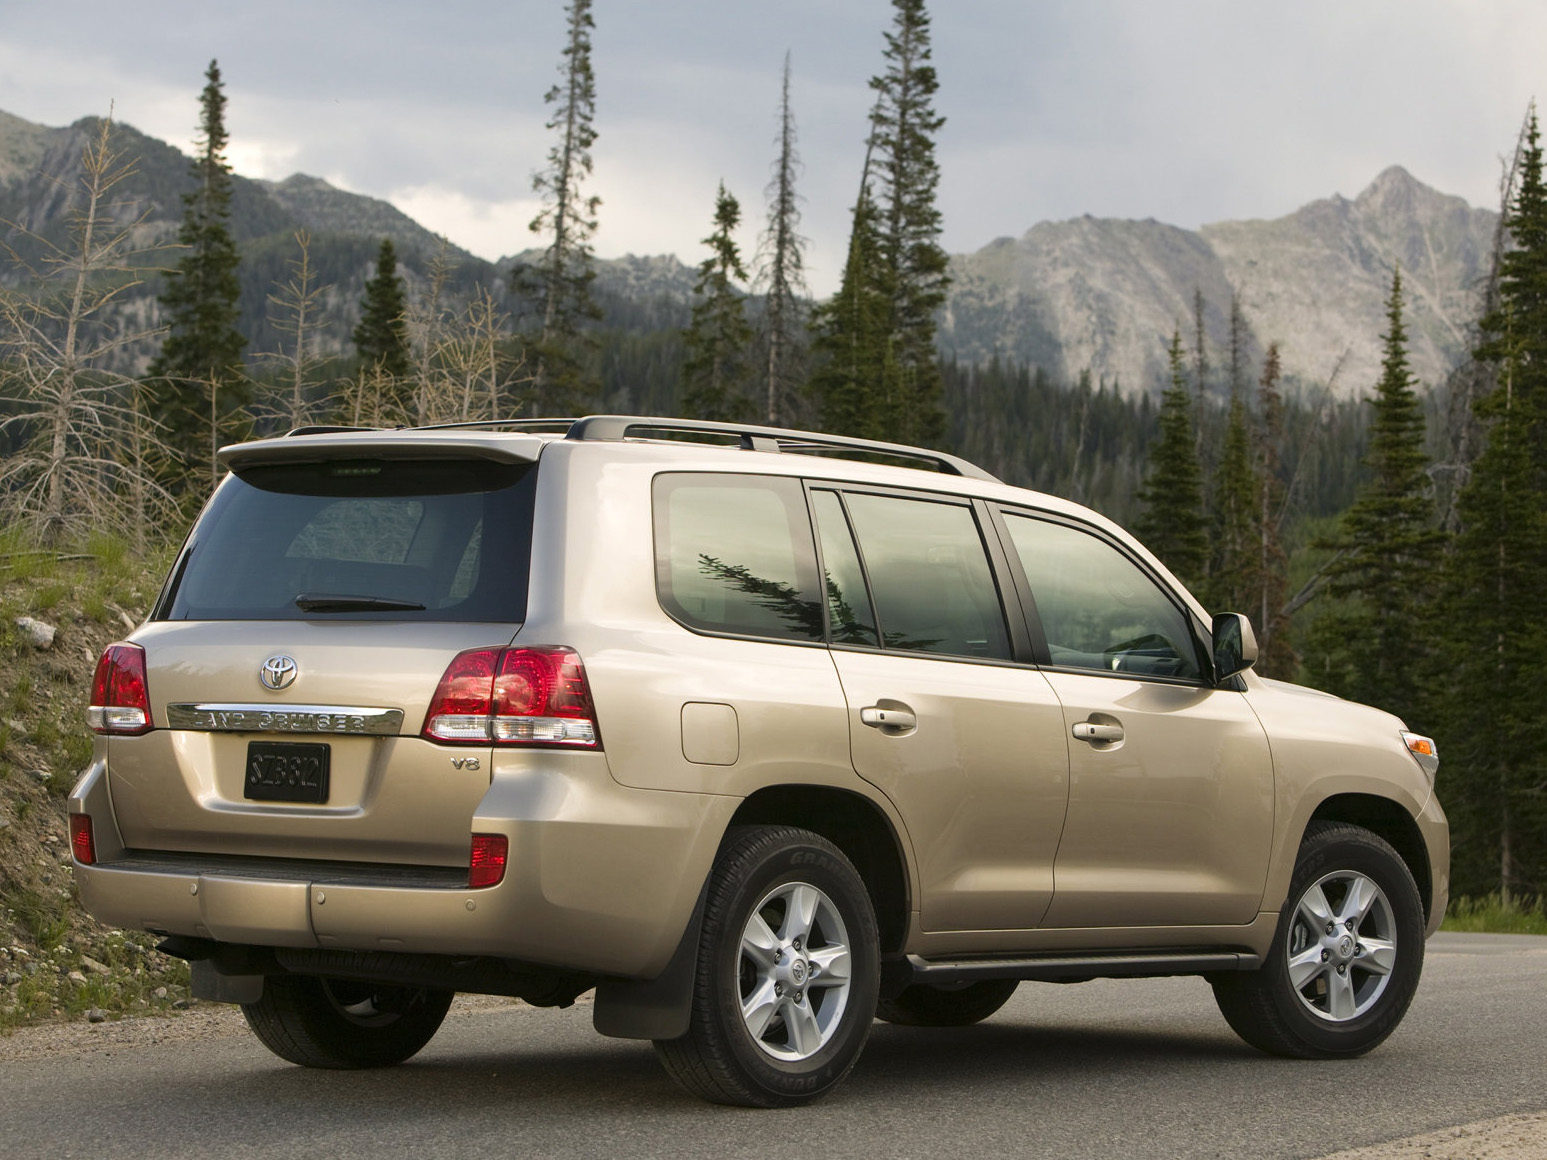 My Perfect Toyota Lc 200 3dtuning Probably The Best Car Configurator 1998 Land Cruiser V8 Engine Diagram Suv 2007